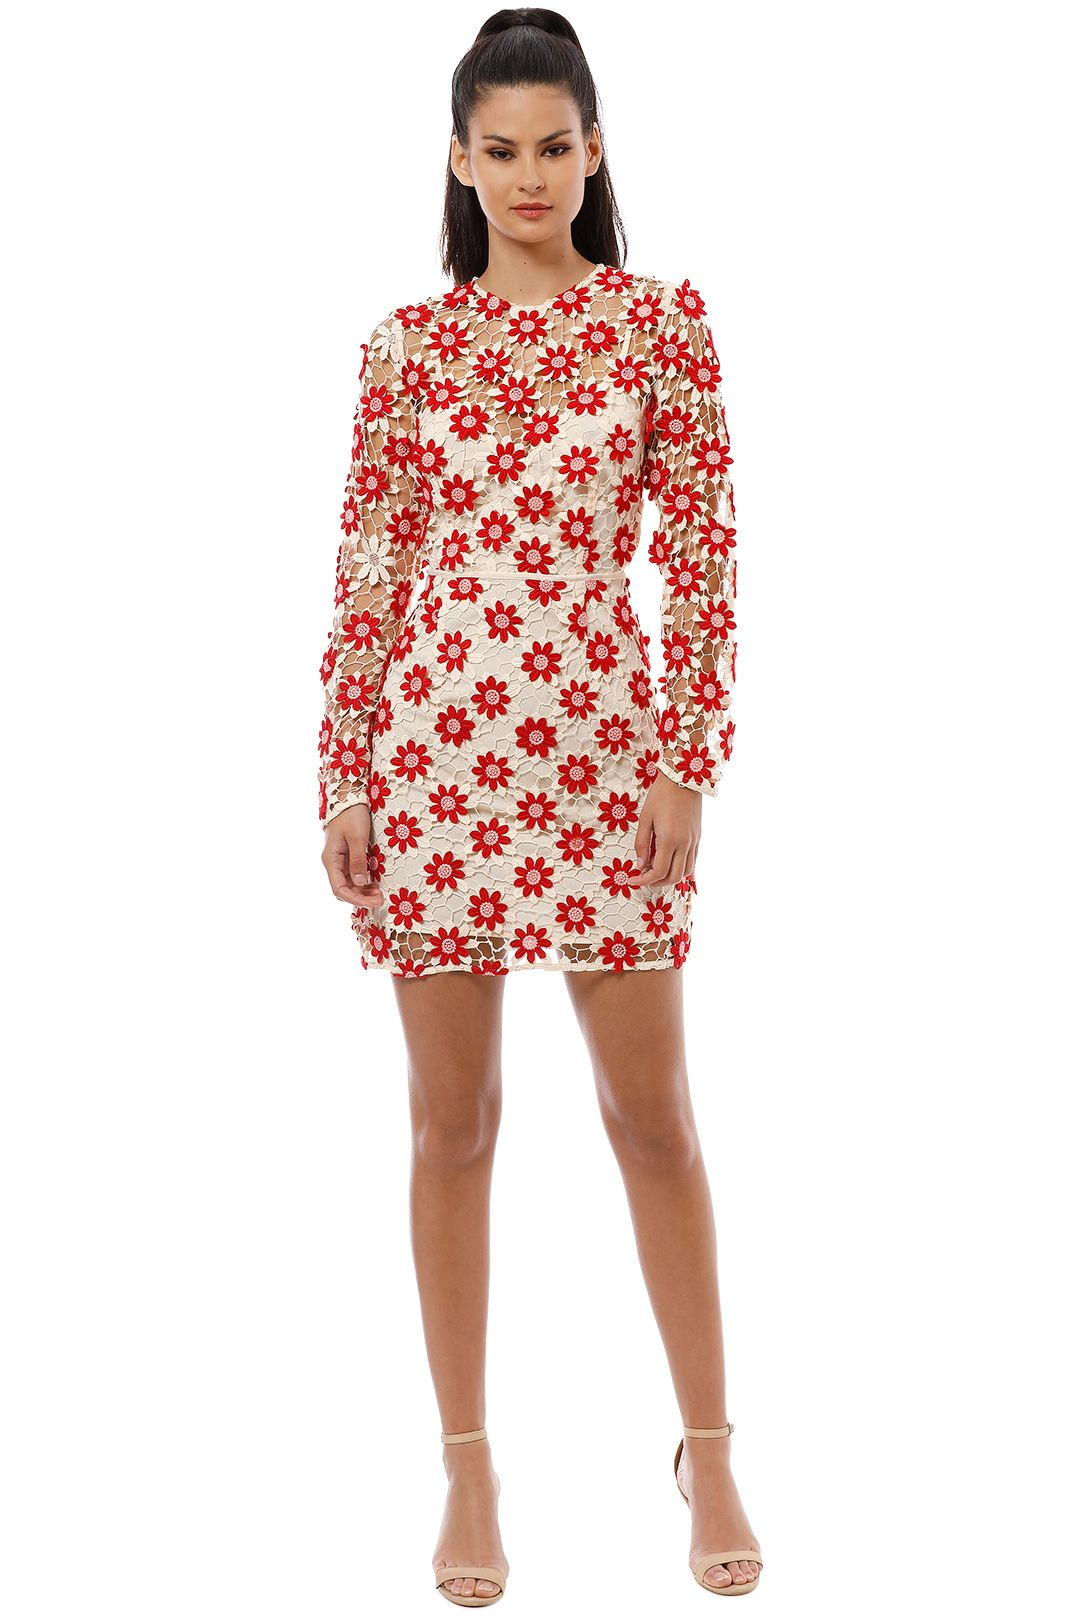 Talulah - Britain LS Mini Dress - Red Cream - Front